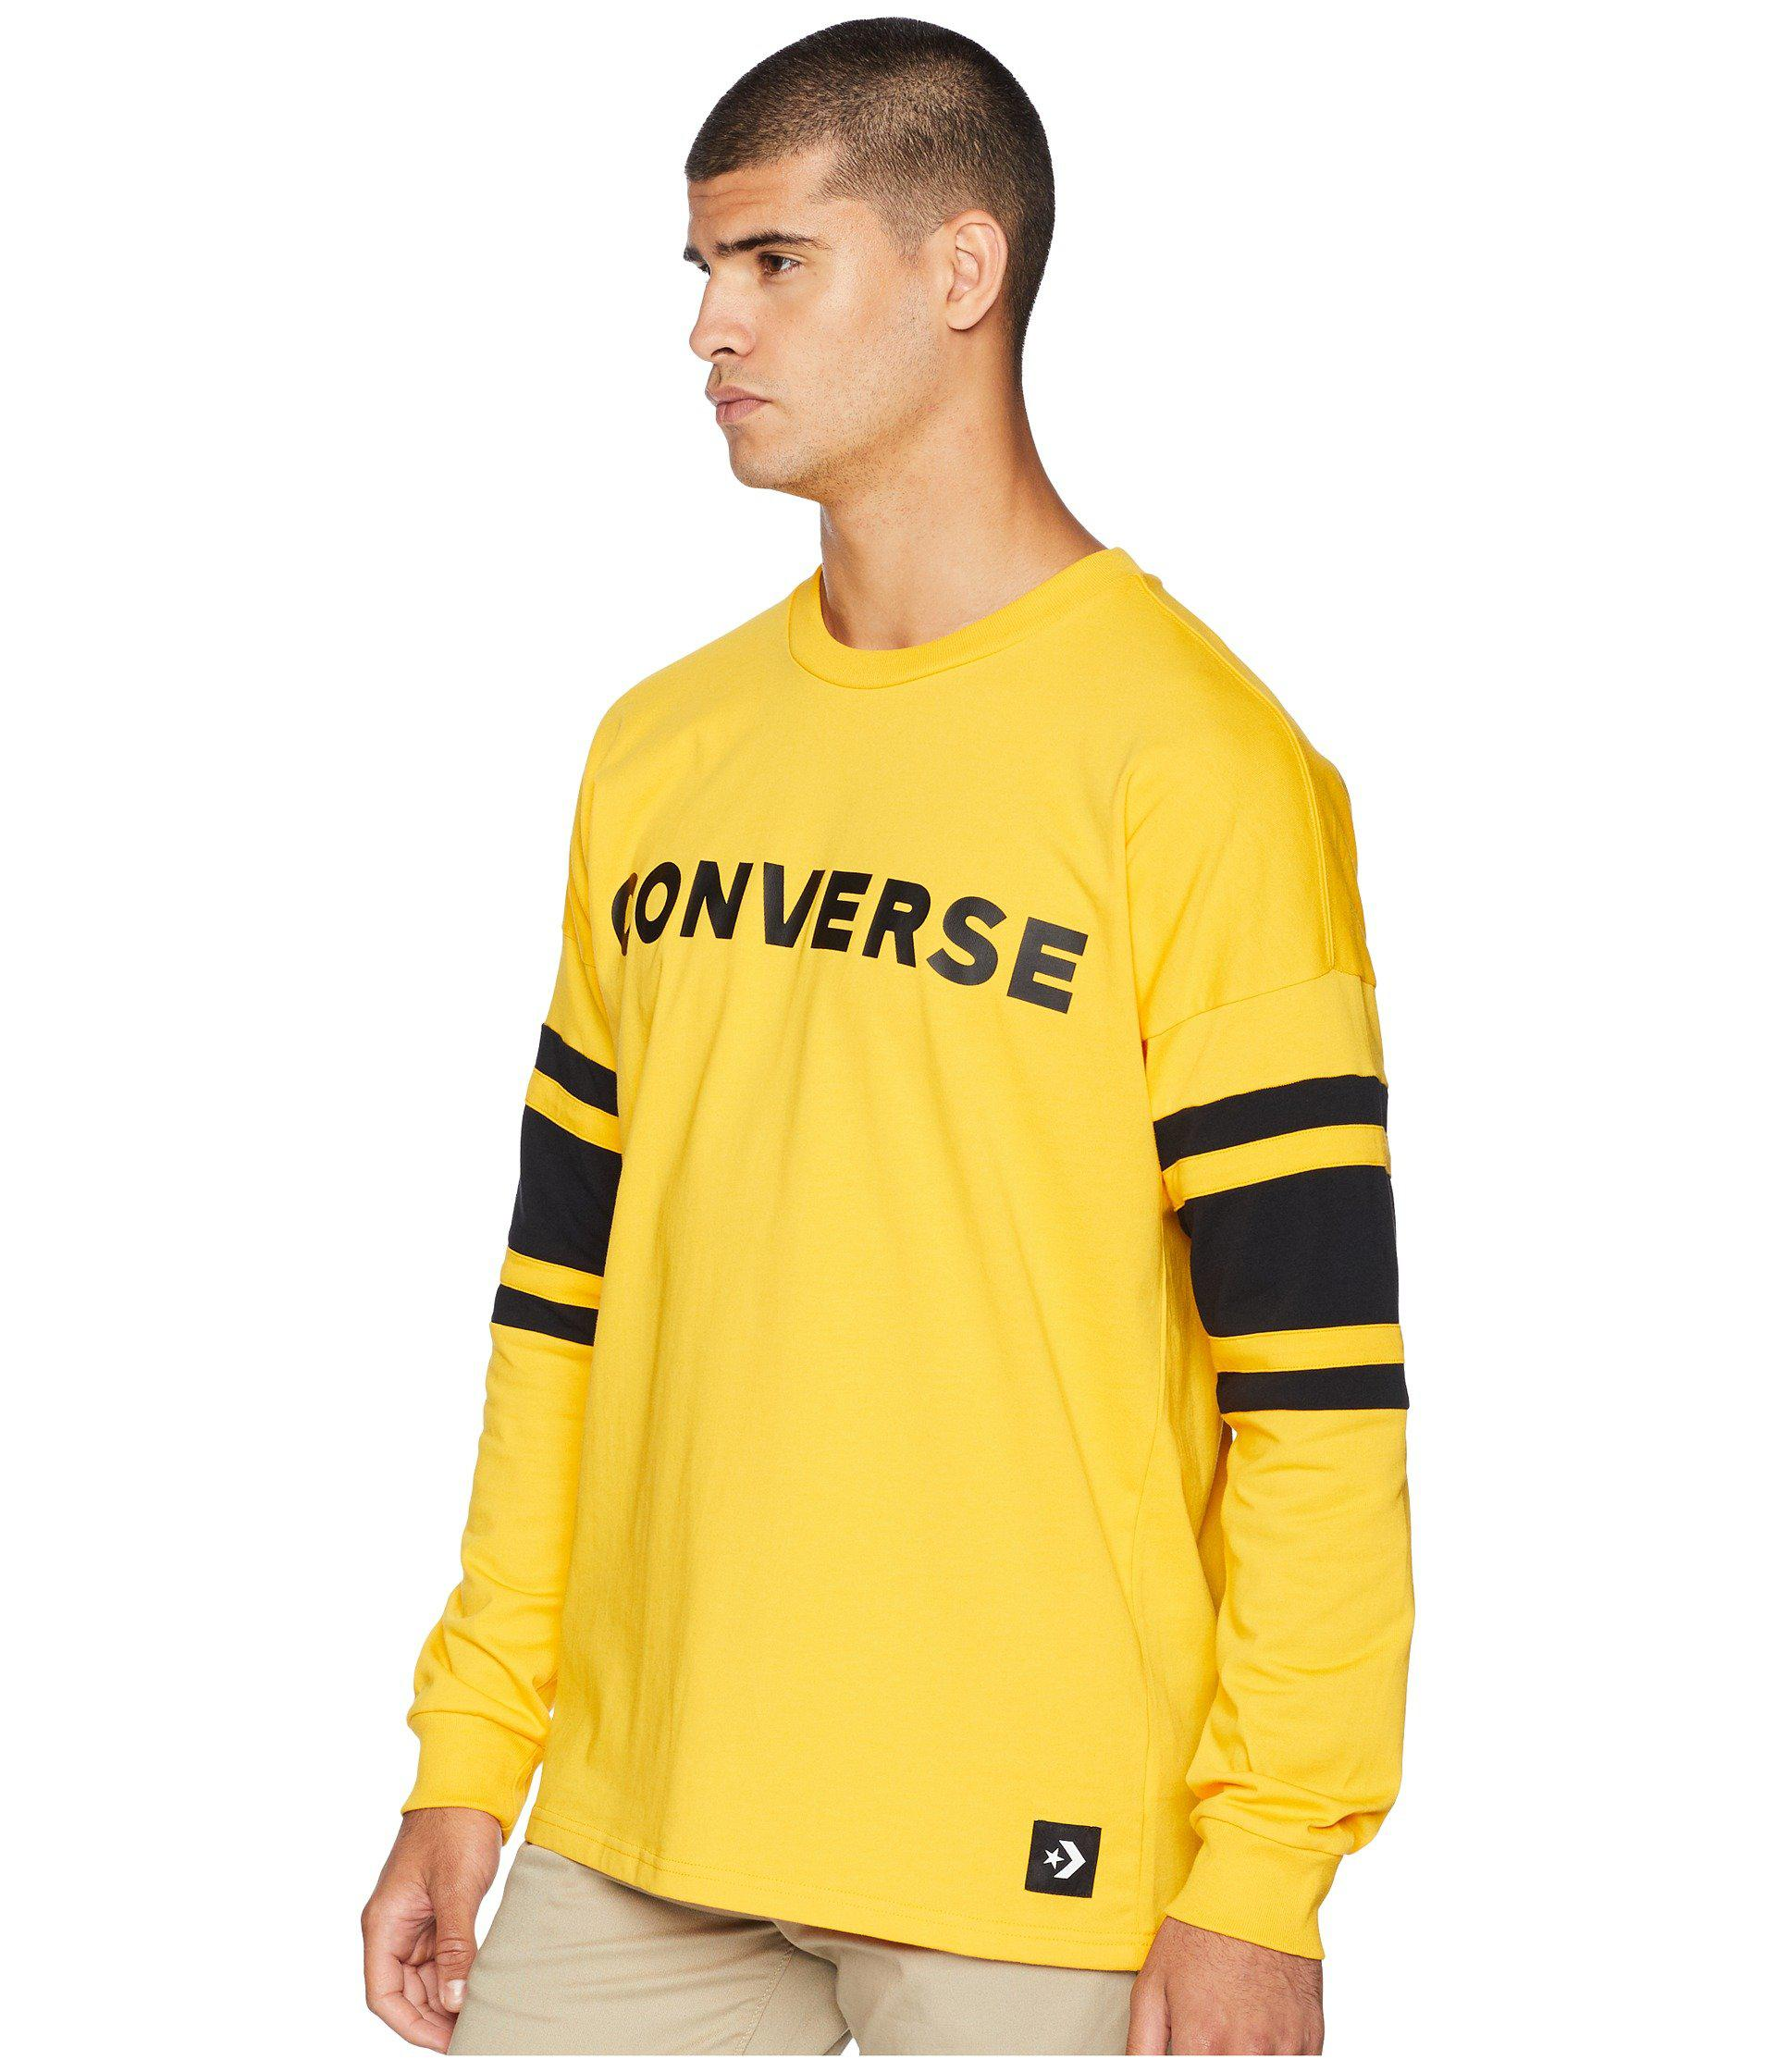 converse pullover gold